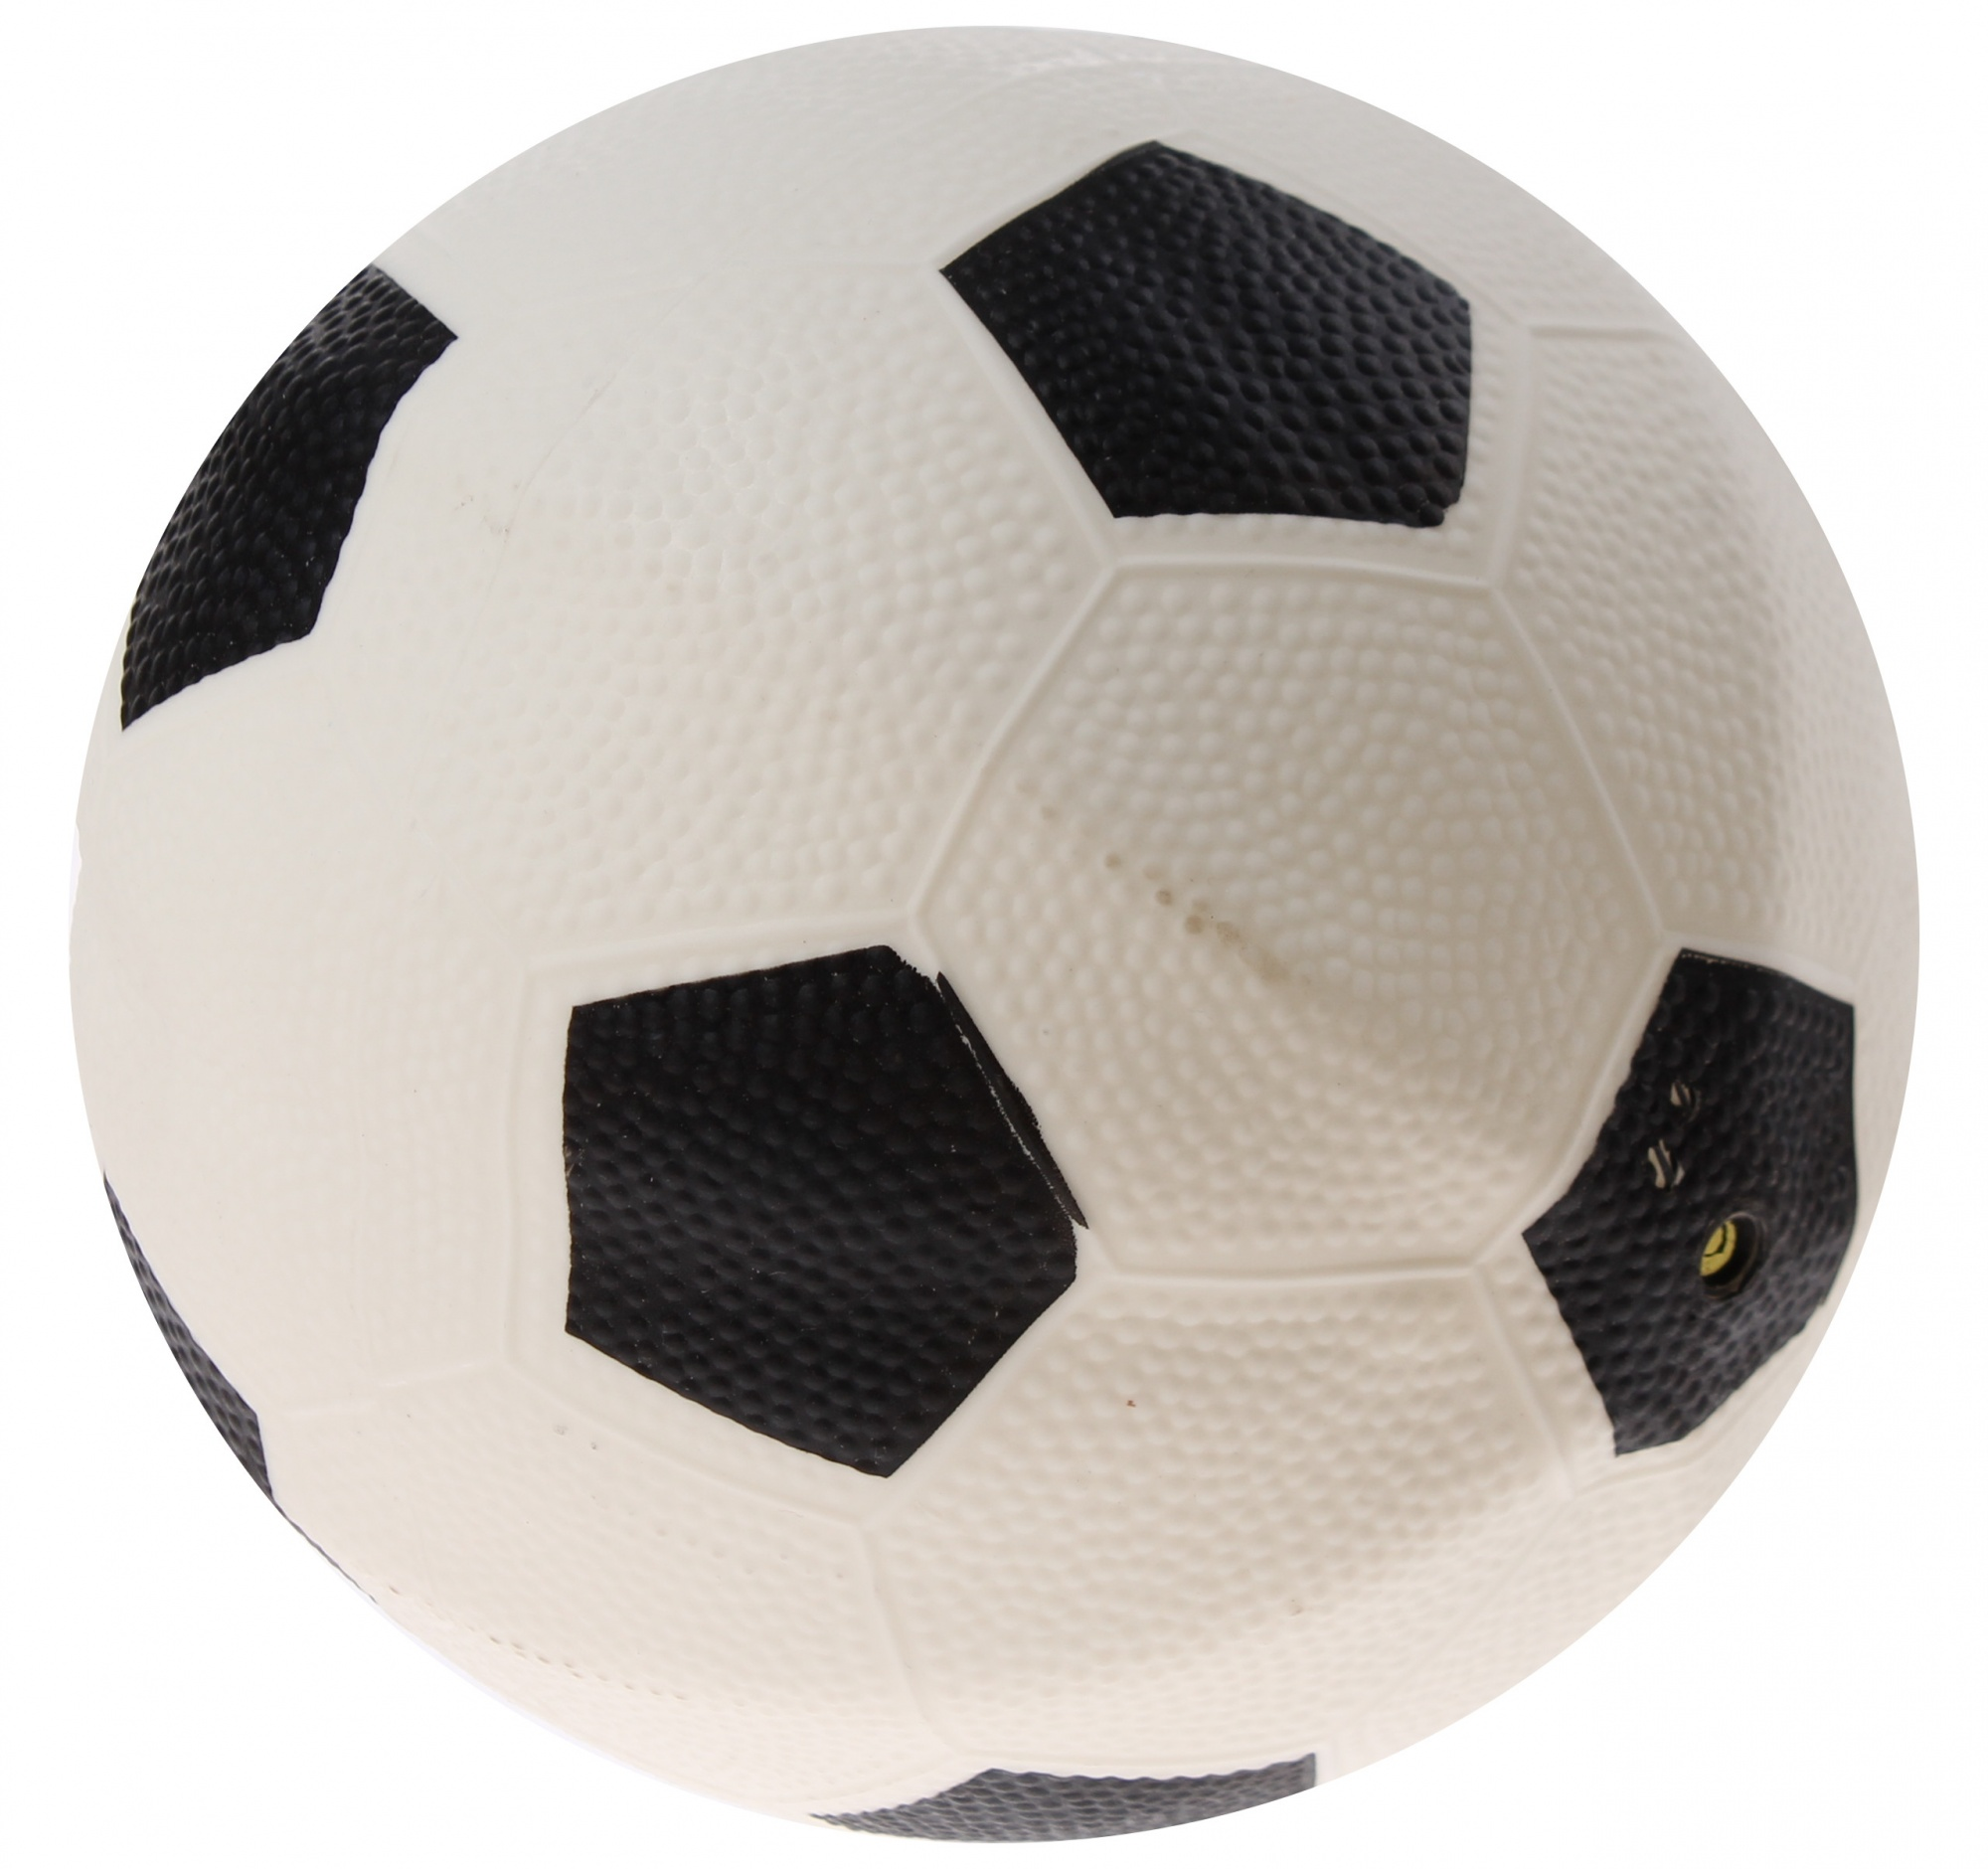 Ball Football Print 21 Cm White